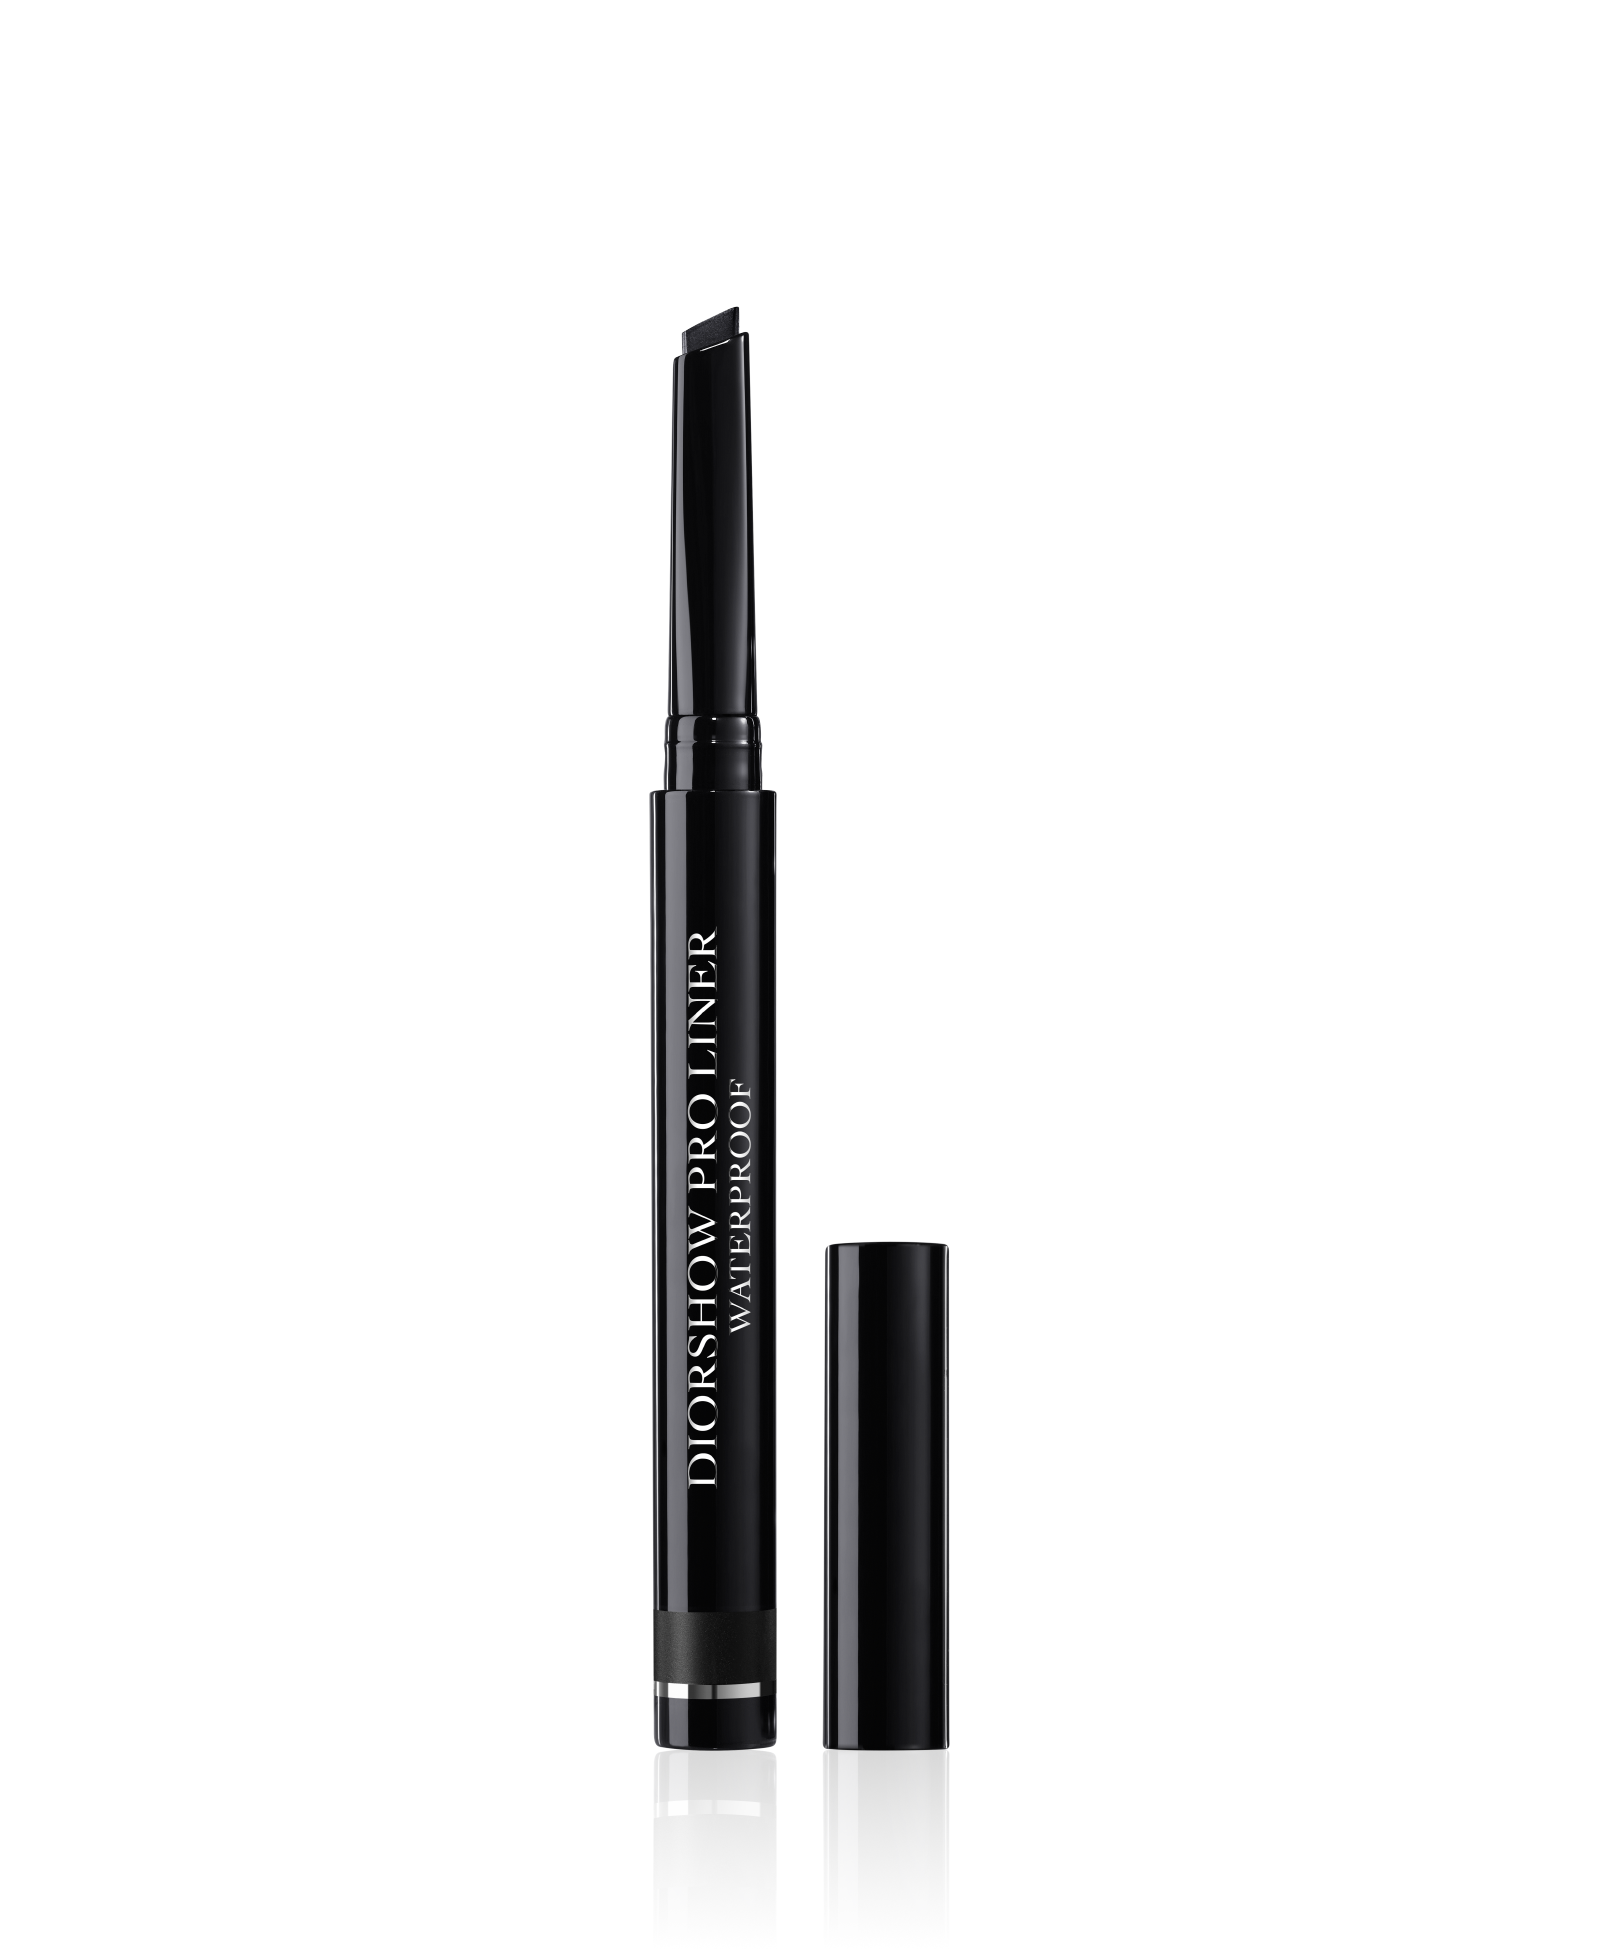 Discover DIORSHOW PRO LINER by Christian Dior available in Dior official online store. Videos, Bevel-tip eyeliner, long-lasting spectacular line tutorials and beauty tips on Dior website.